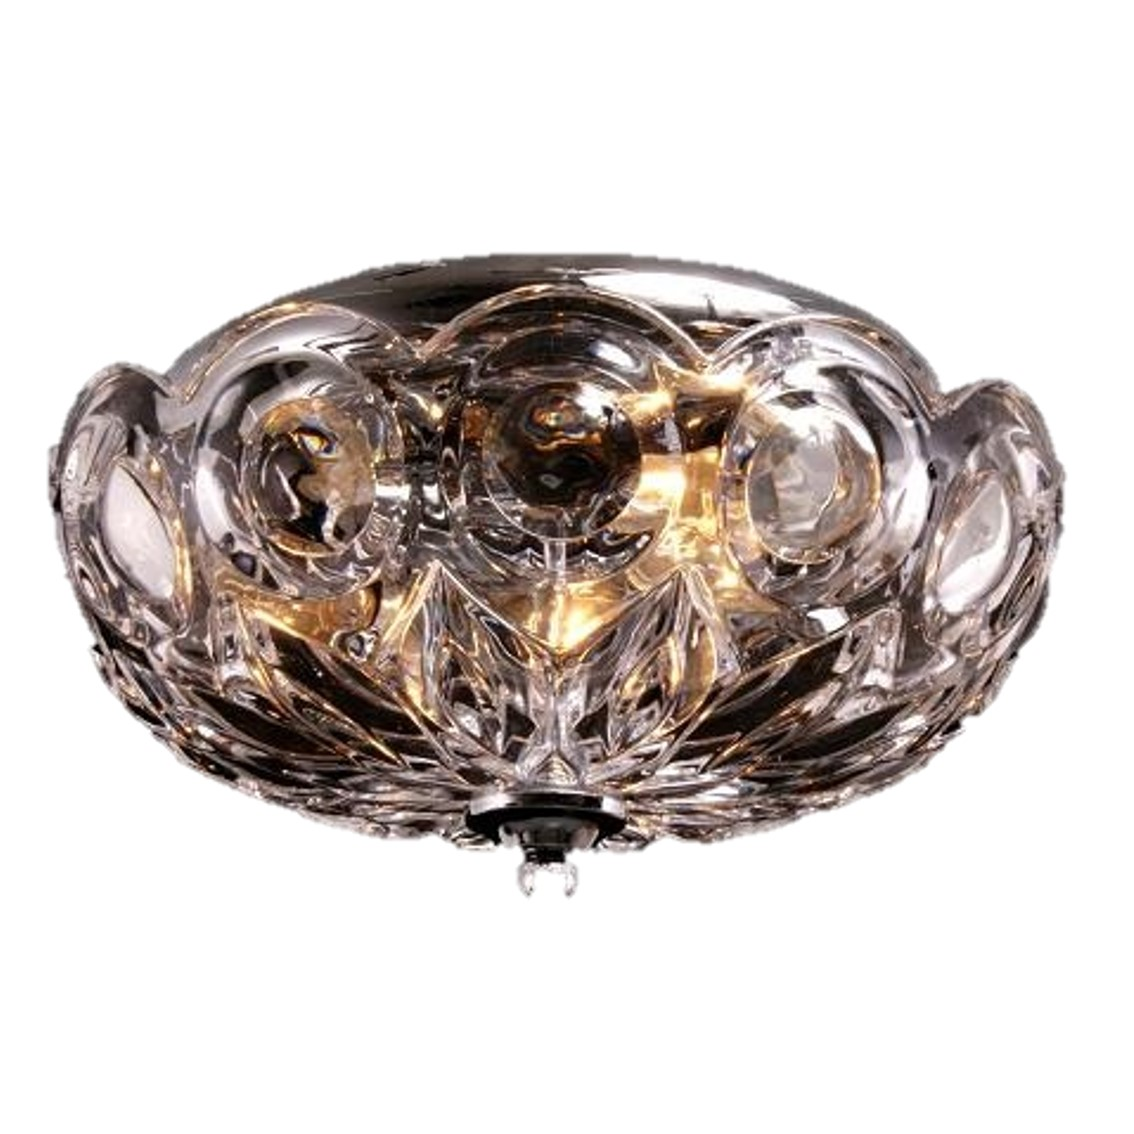 -TTSC630172-25CM-Crown Crystal/ Brown Ceiling